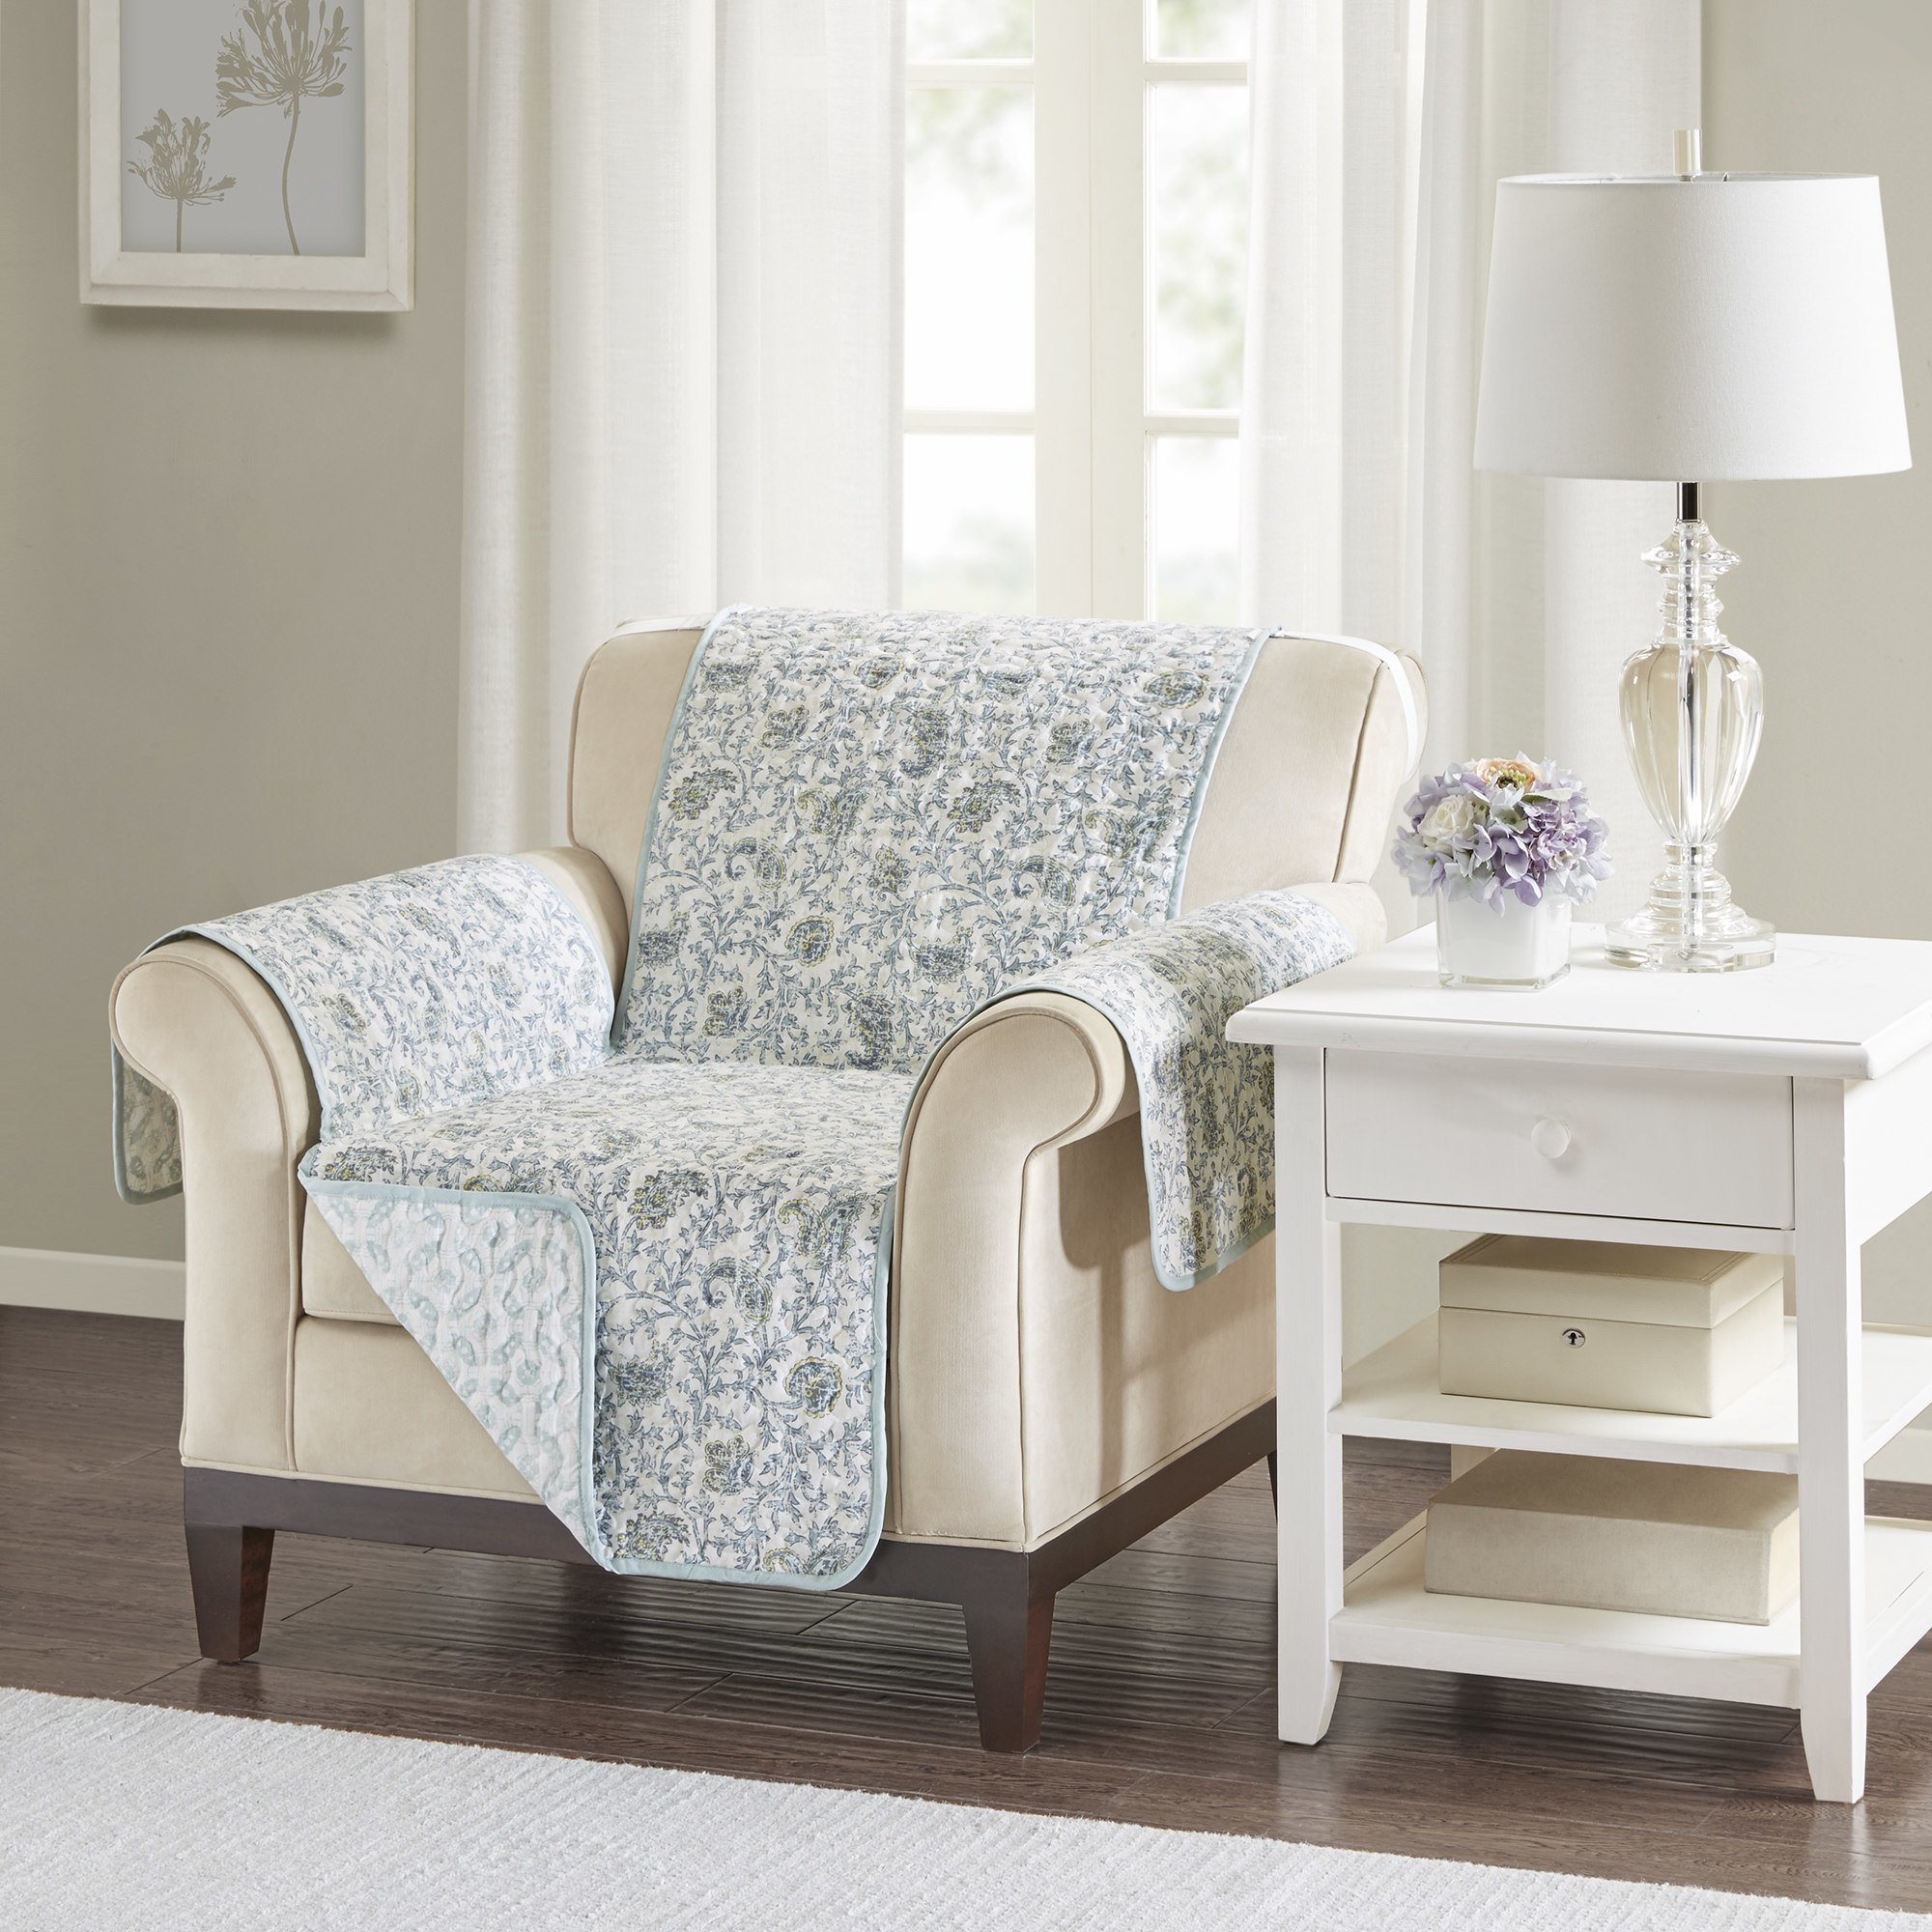 MN 1 Piece Grey White Floral Theme Chair Protector, Gray Geometric Flower Pattern Couch Protection Flowers Paisley Leaves Furniture Protection Cover Pets Animals Covers Nature, Polyester